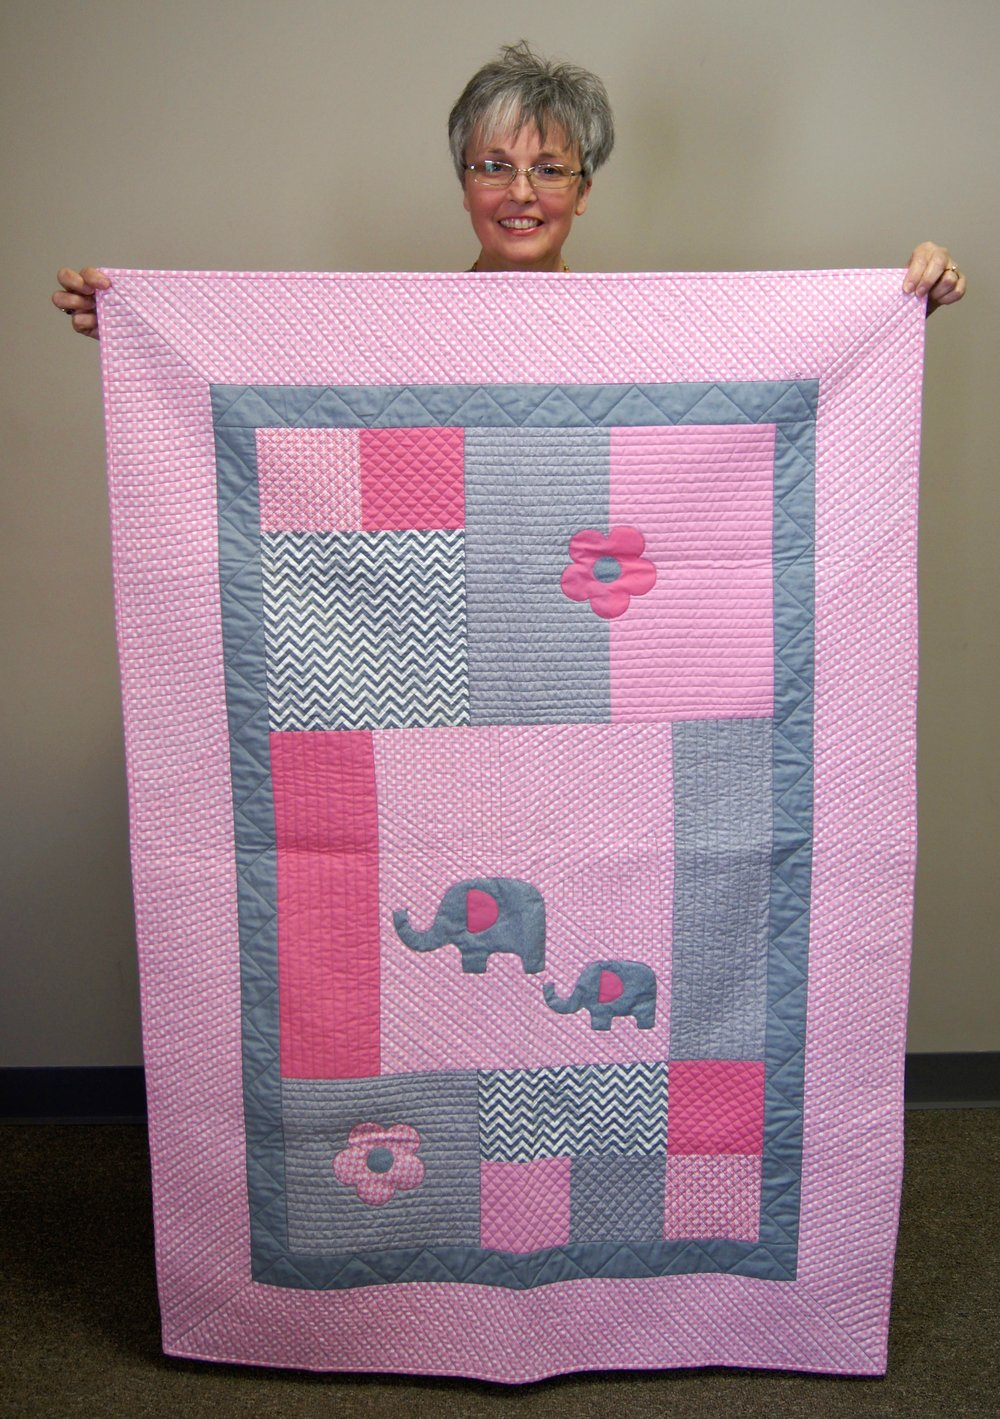 Elephants are pretty in pink on Patricia's baby quilt